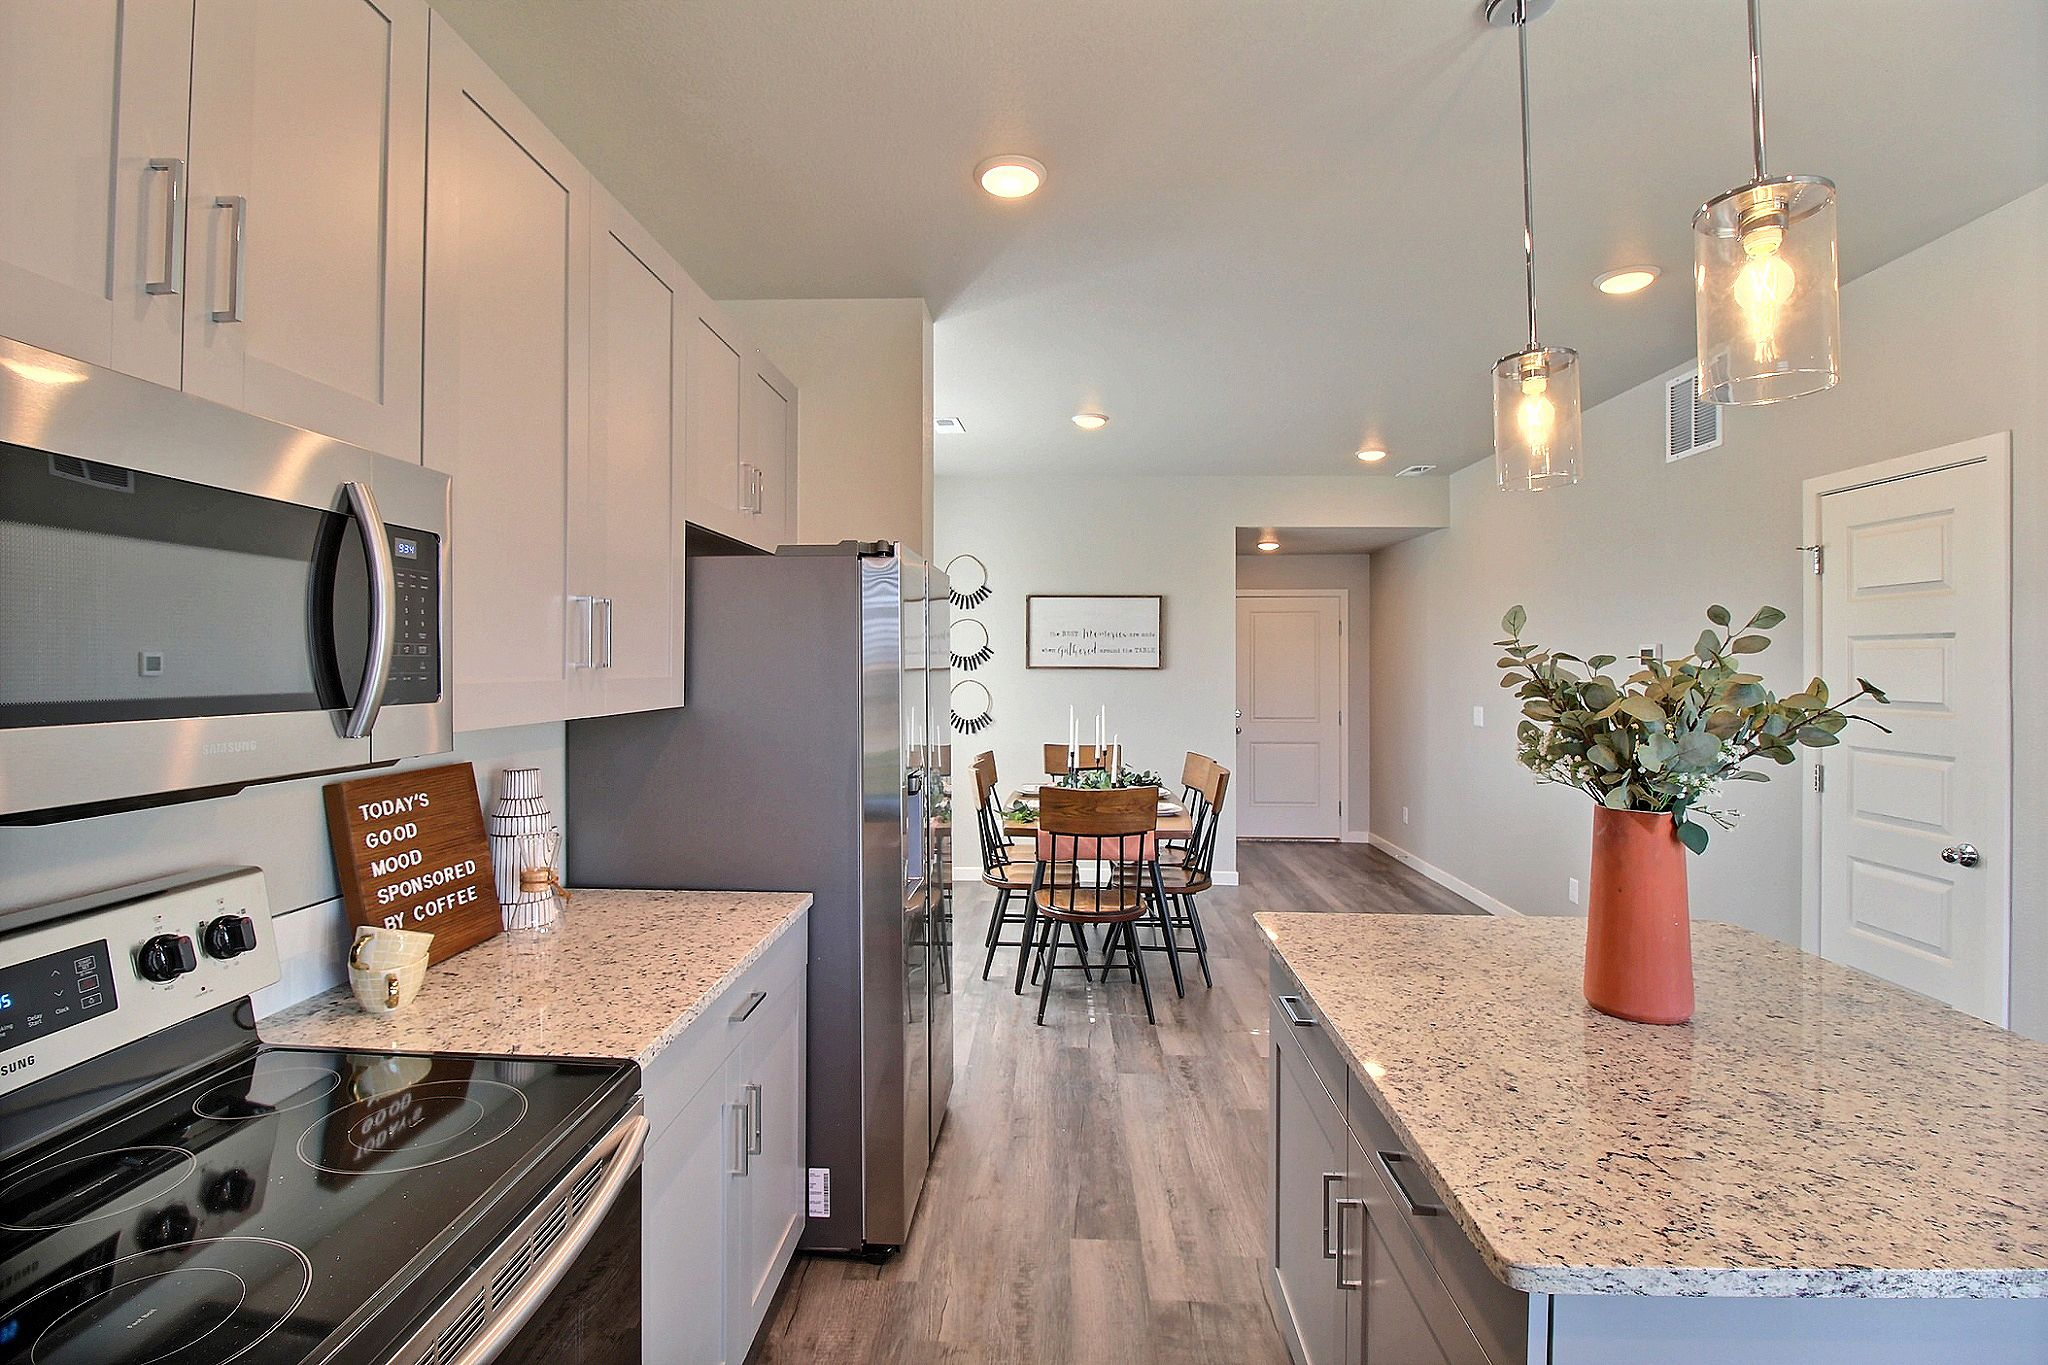 Kitchen featured in the Weston By Baessler Homes in Greeley, CO